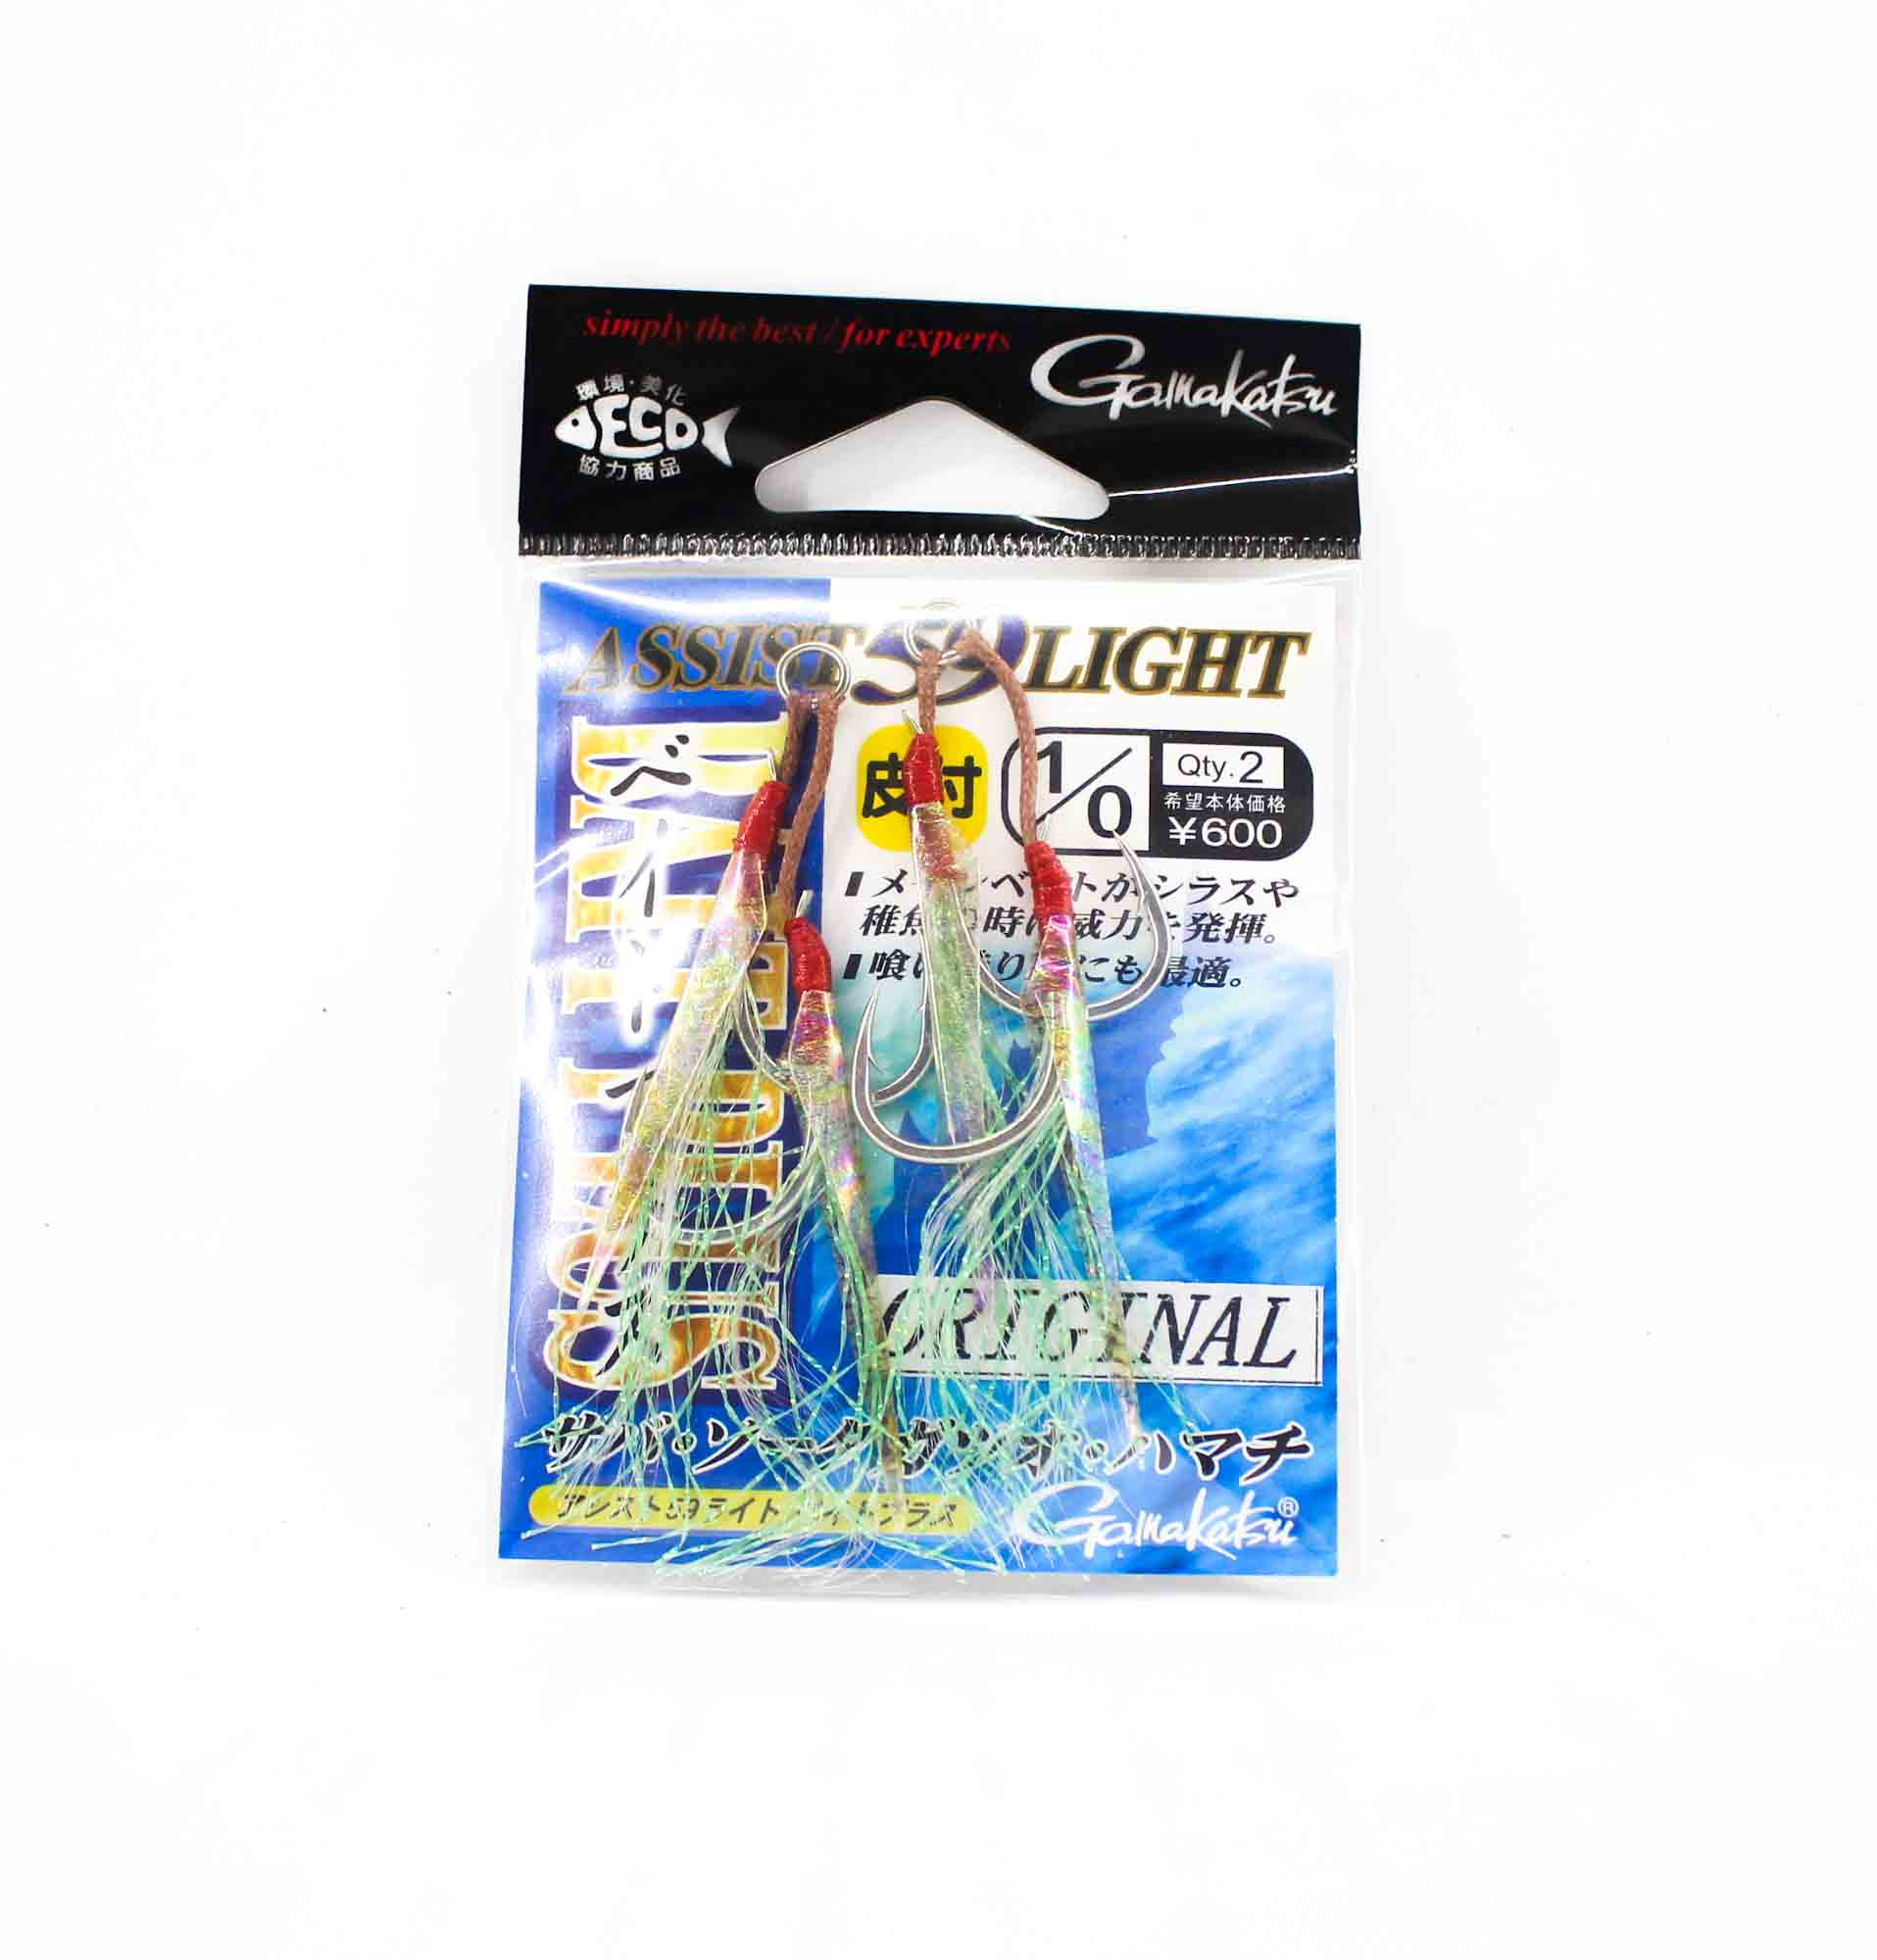 Gamakatsu 68170 Assist 59 Light Bait Plus Assist Hooks Size 1/0 (1607)